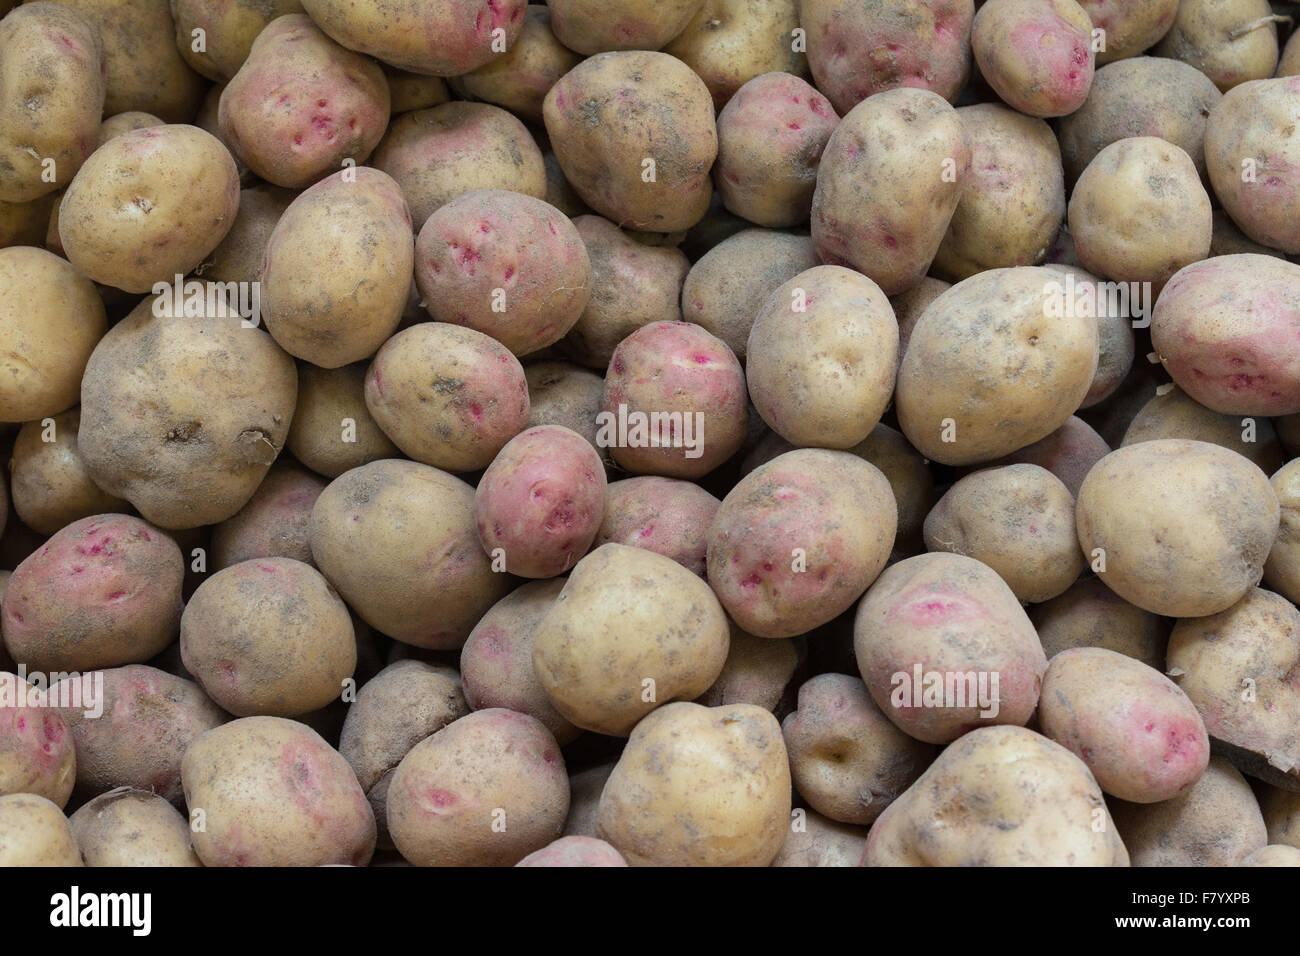 red wrinkled potatoes - raw canarian wrinkly potatoes - papas arrugadas - Stock Image